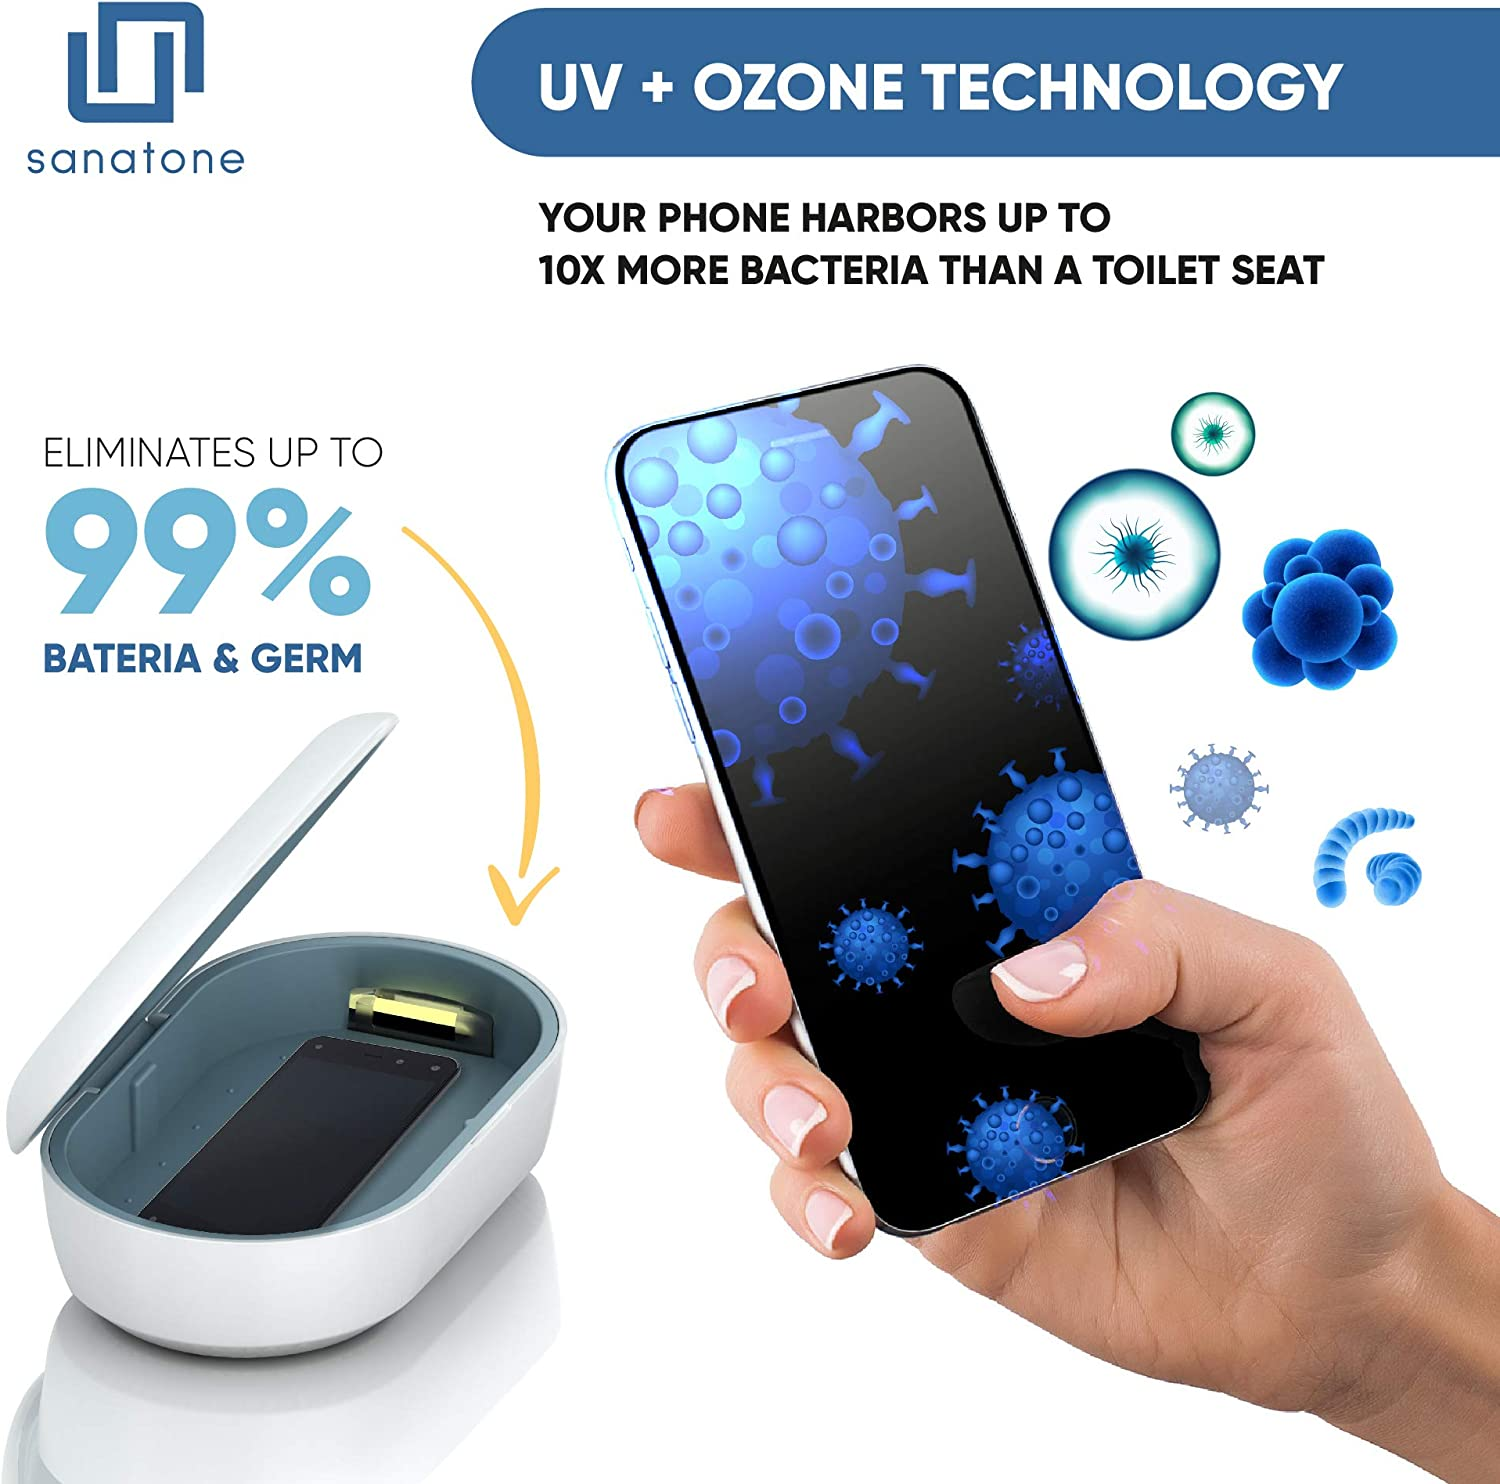 SANATONE 3-in-1 UV Ozone Phone Sanitizer Box Wireless Charger for iPhone and Android Heat Includes Aromatherapy Ultraviolet Smartphone Cleaner Eliminates up to 99.9/% of Germs Without Chemicals